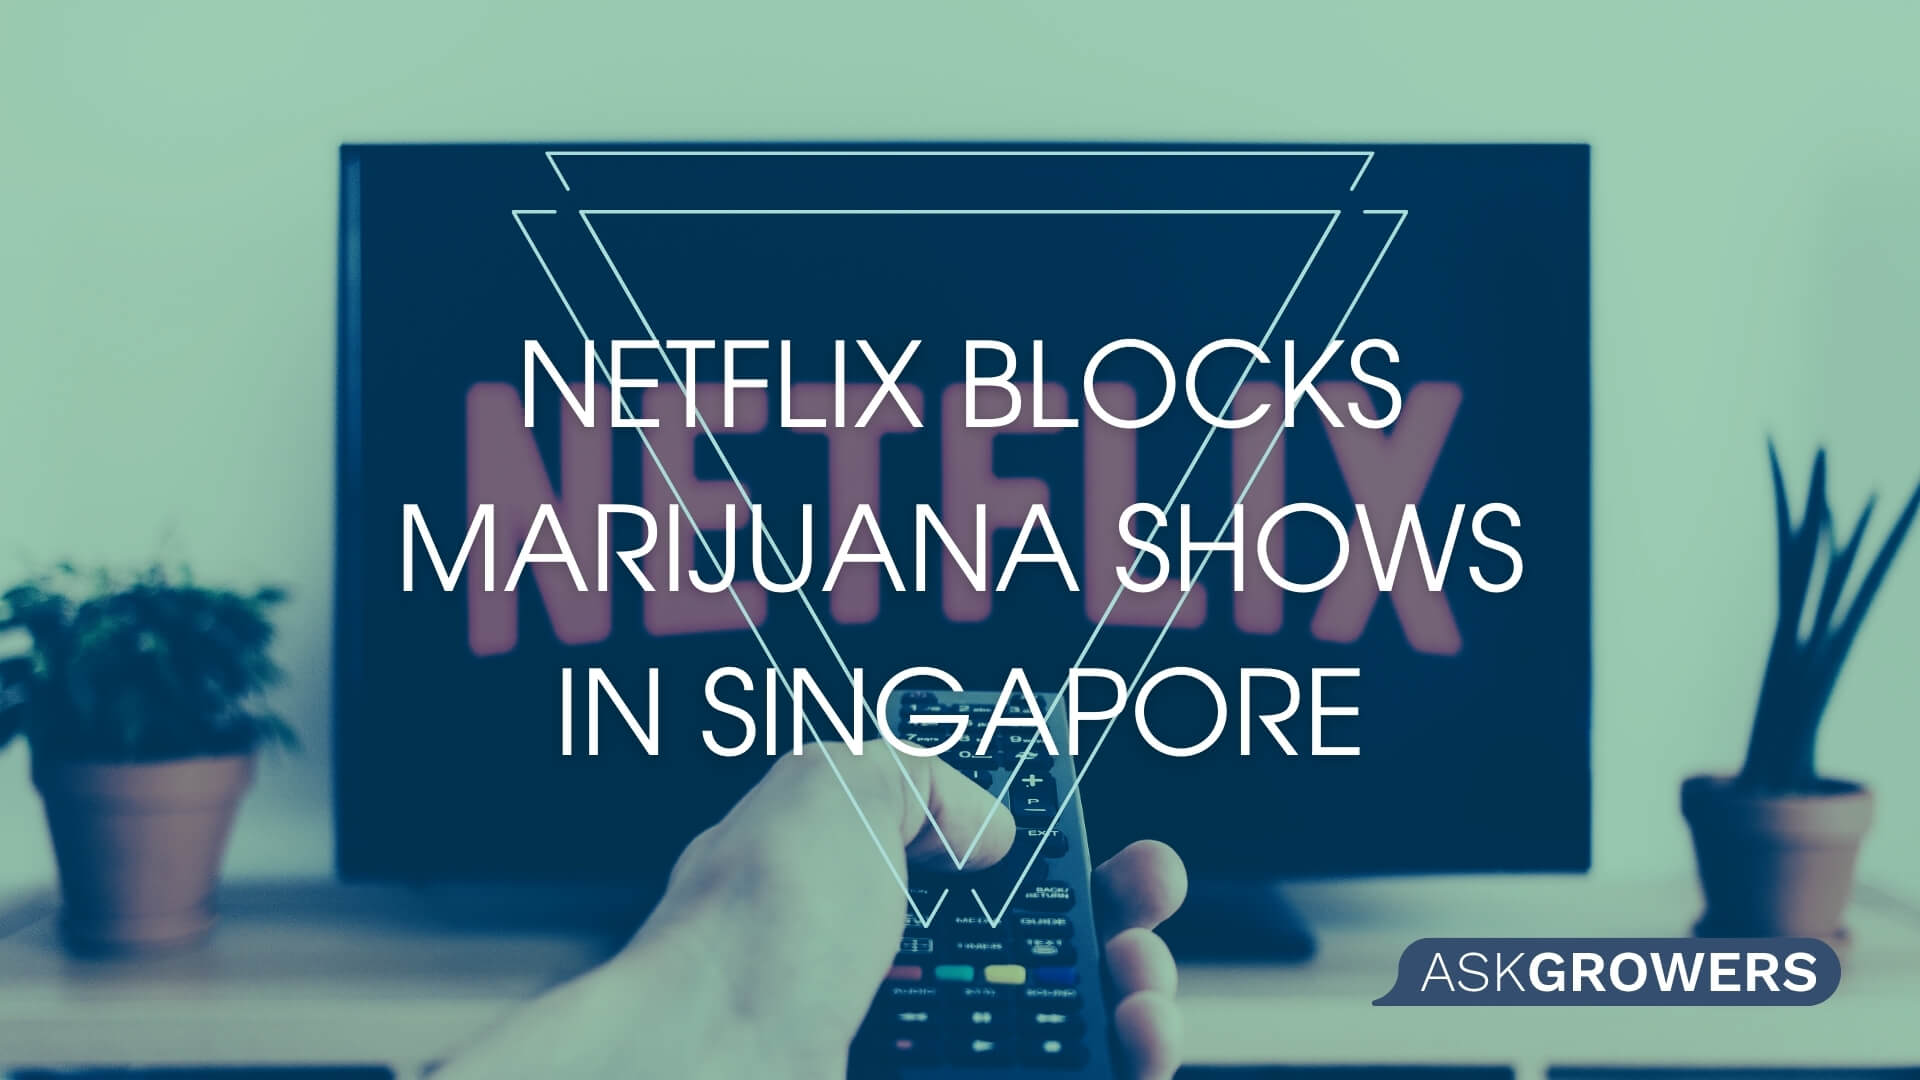 Netflix Blocks Marijuana Shows in Singapore in Response to Government Demands, AskGrowers